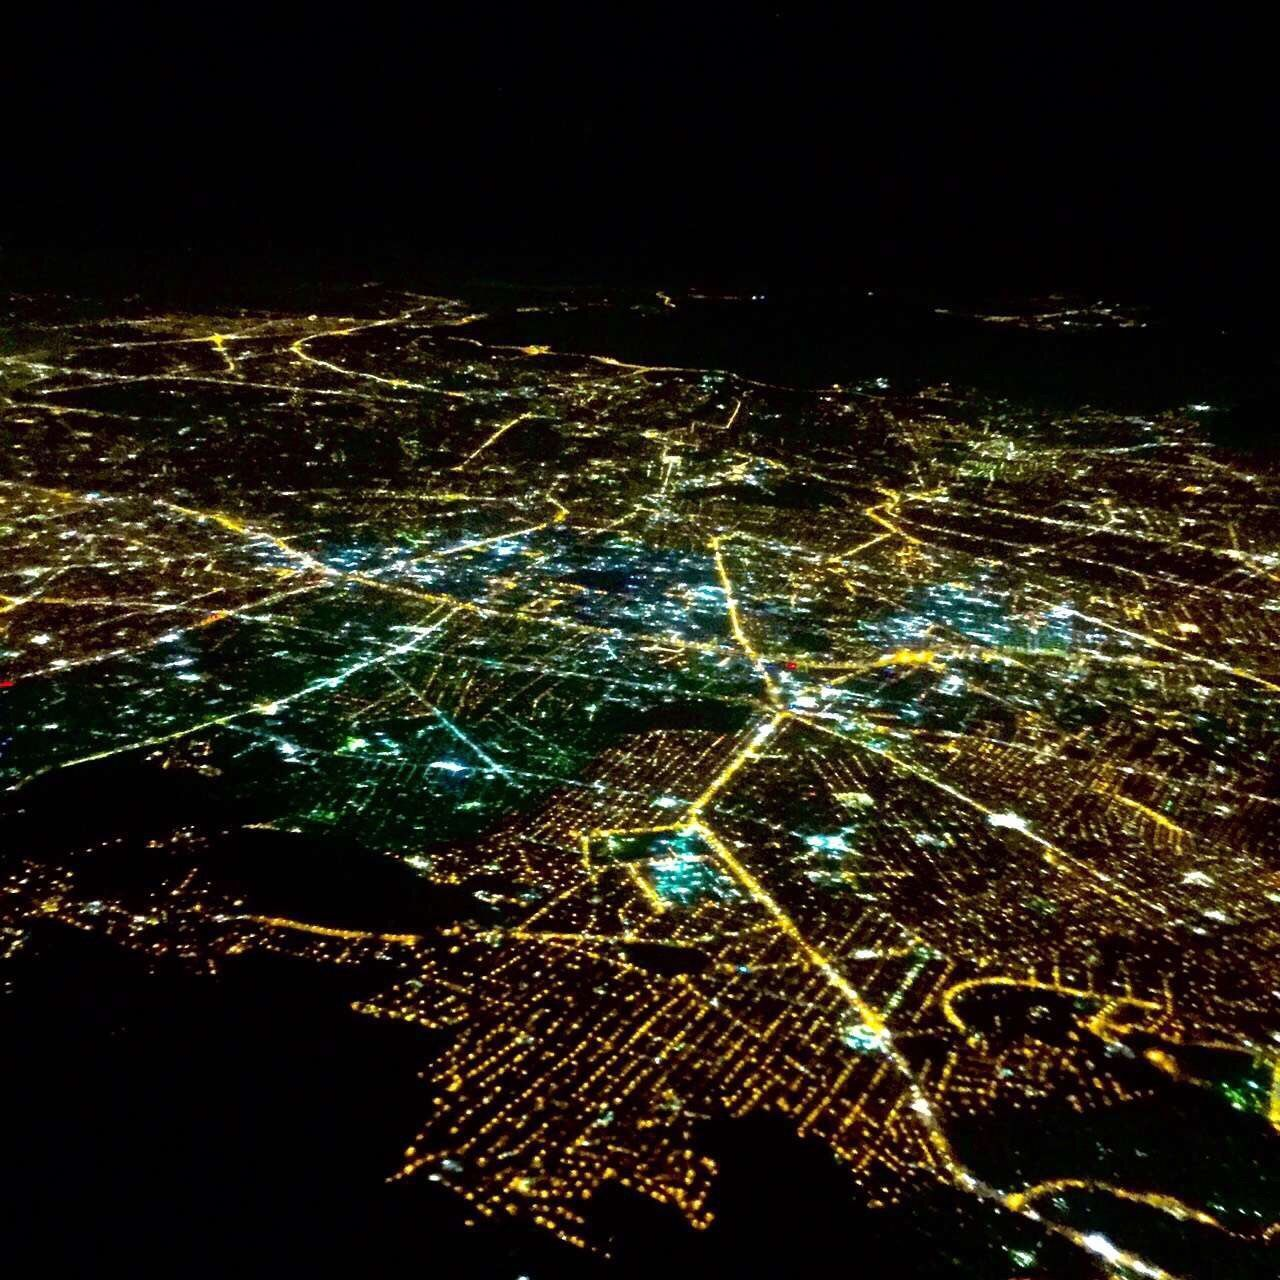 night, illuminated, no people, pattern, aerial view, cityscape, scenics, outdoors, city, black background, nature, satellite view